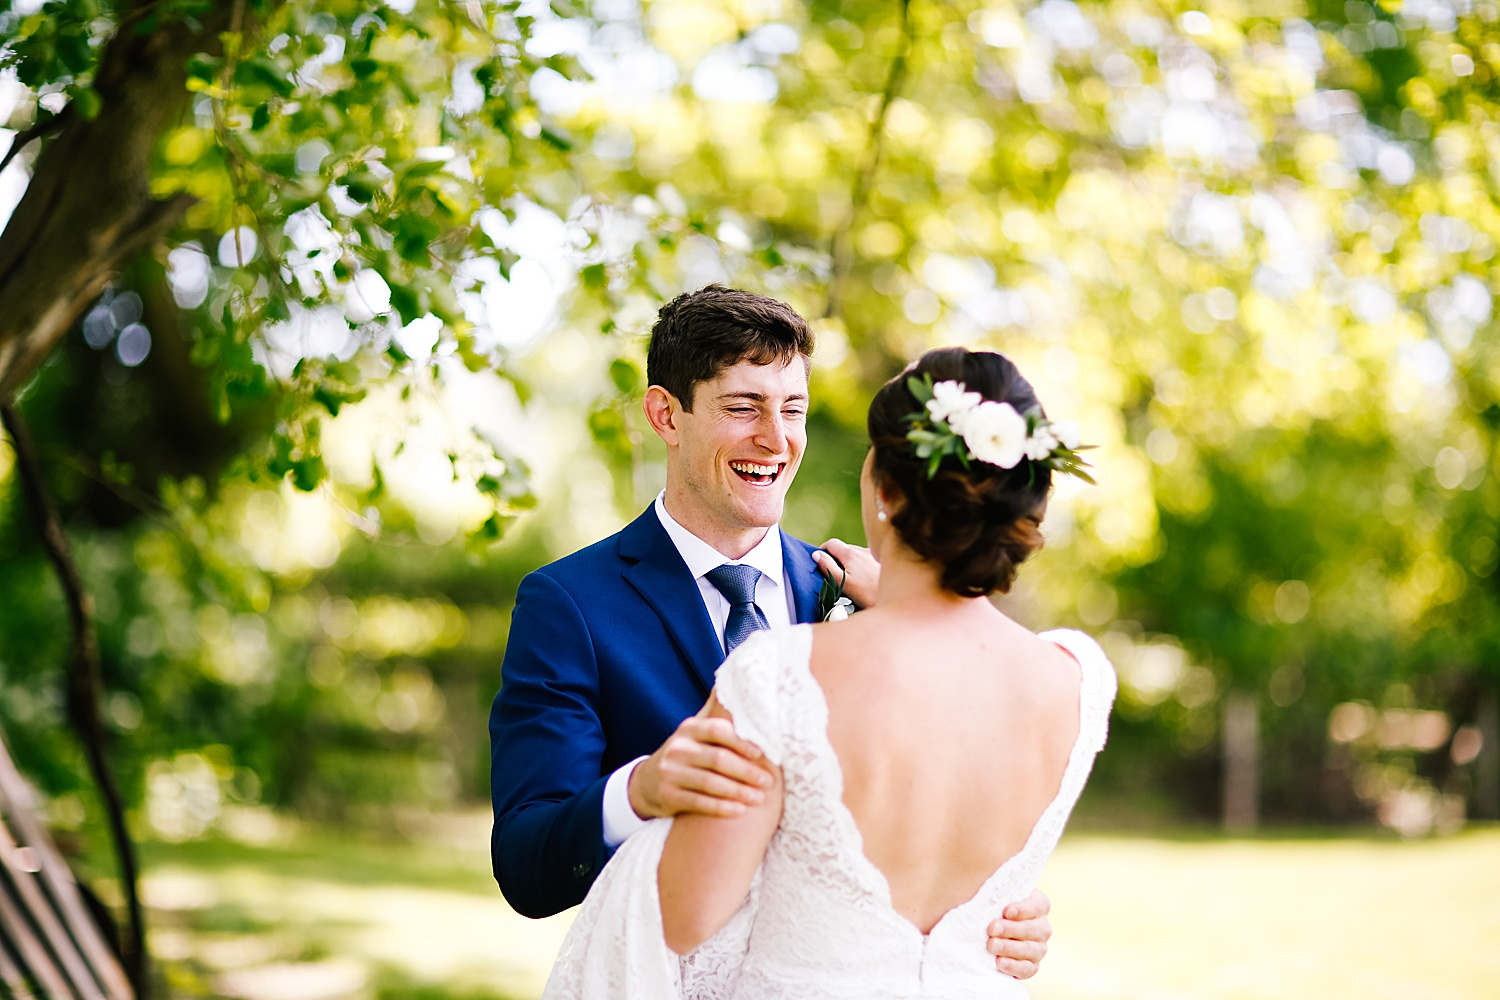 emilyaustin_rosebank_winery_newhope_farm_wedding_image039.jpg